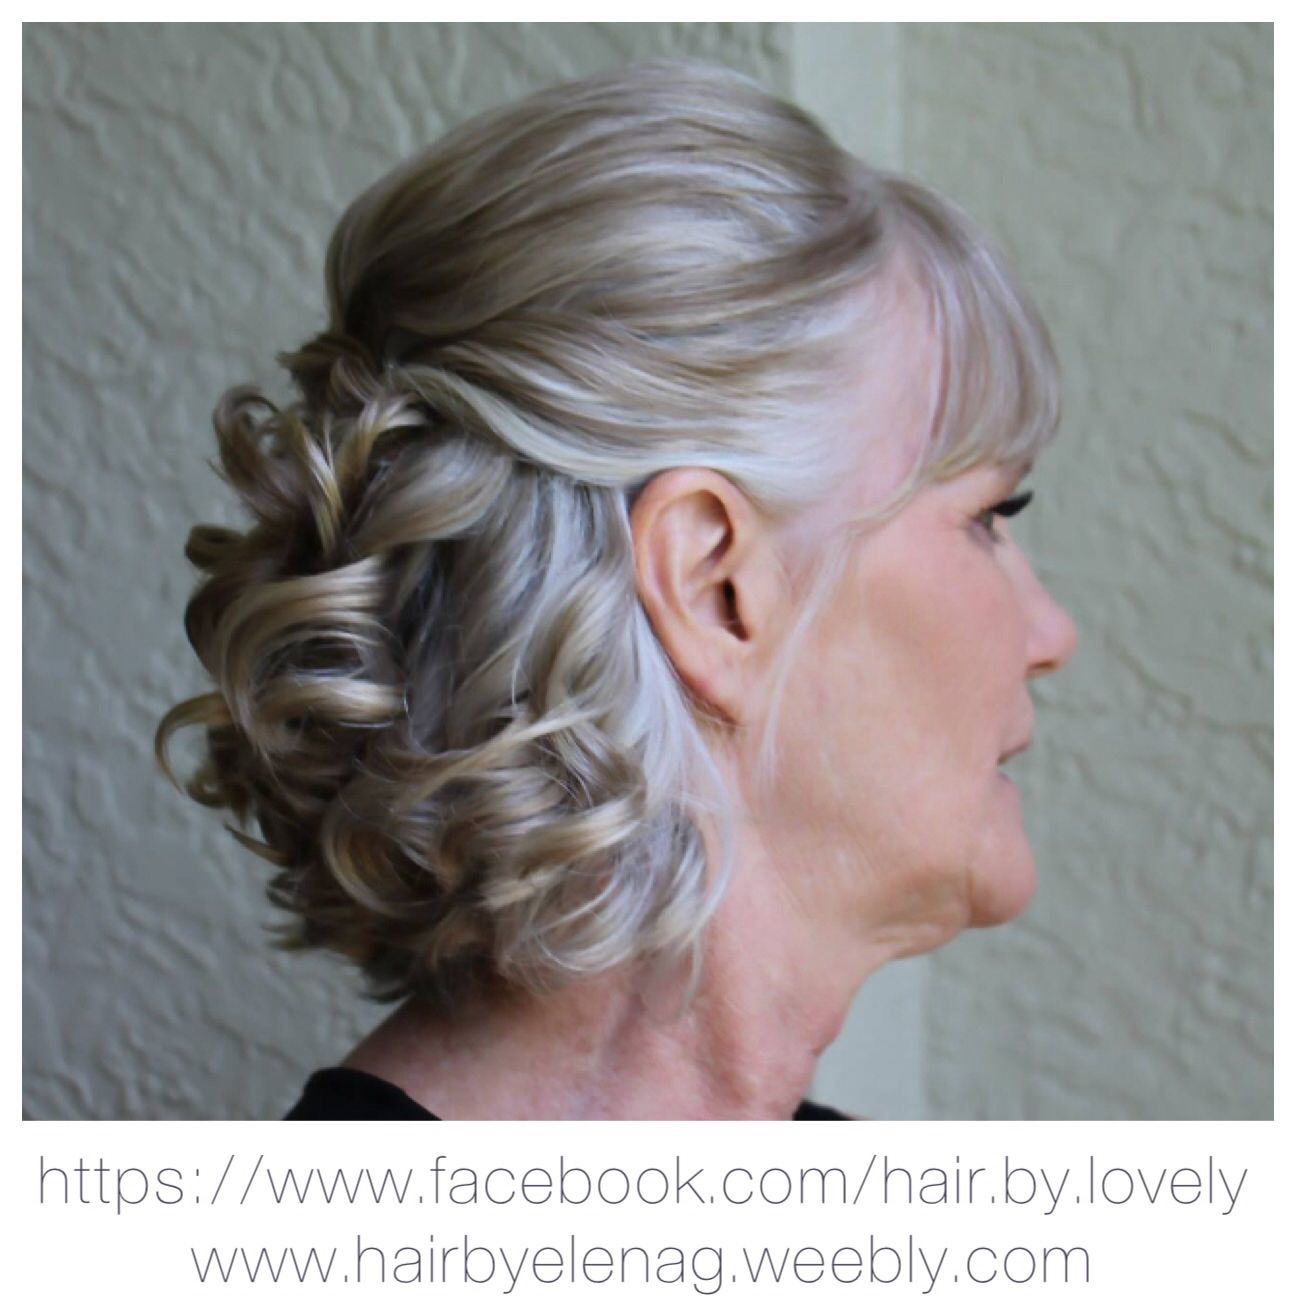 bridal hair, wedding hair, mother of the groom | hair and